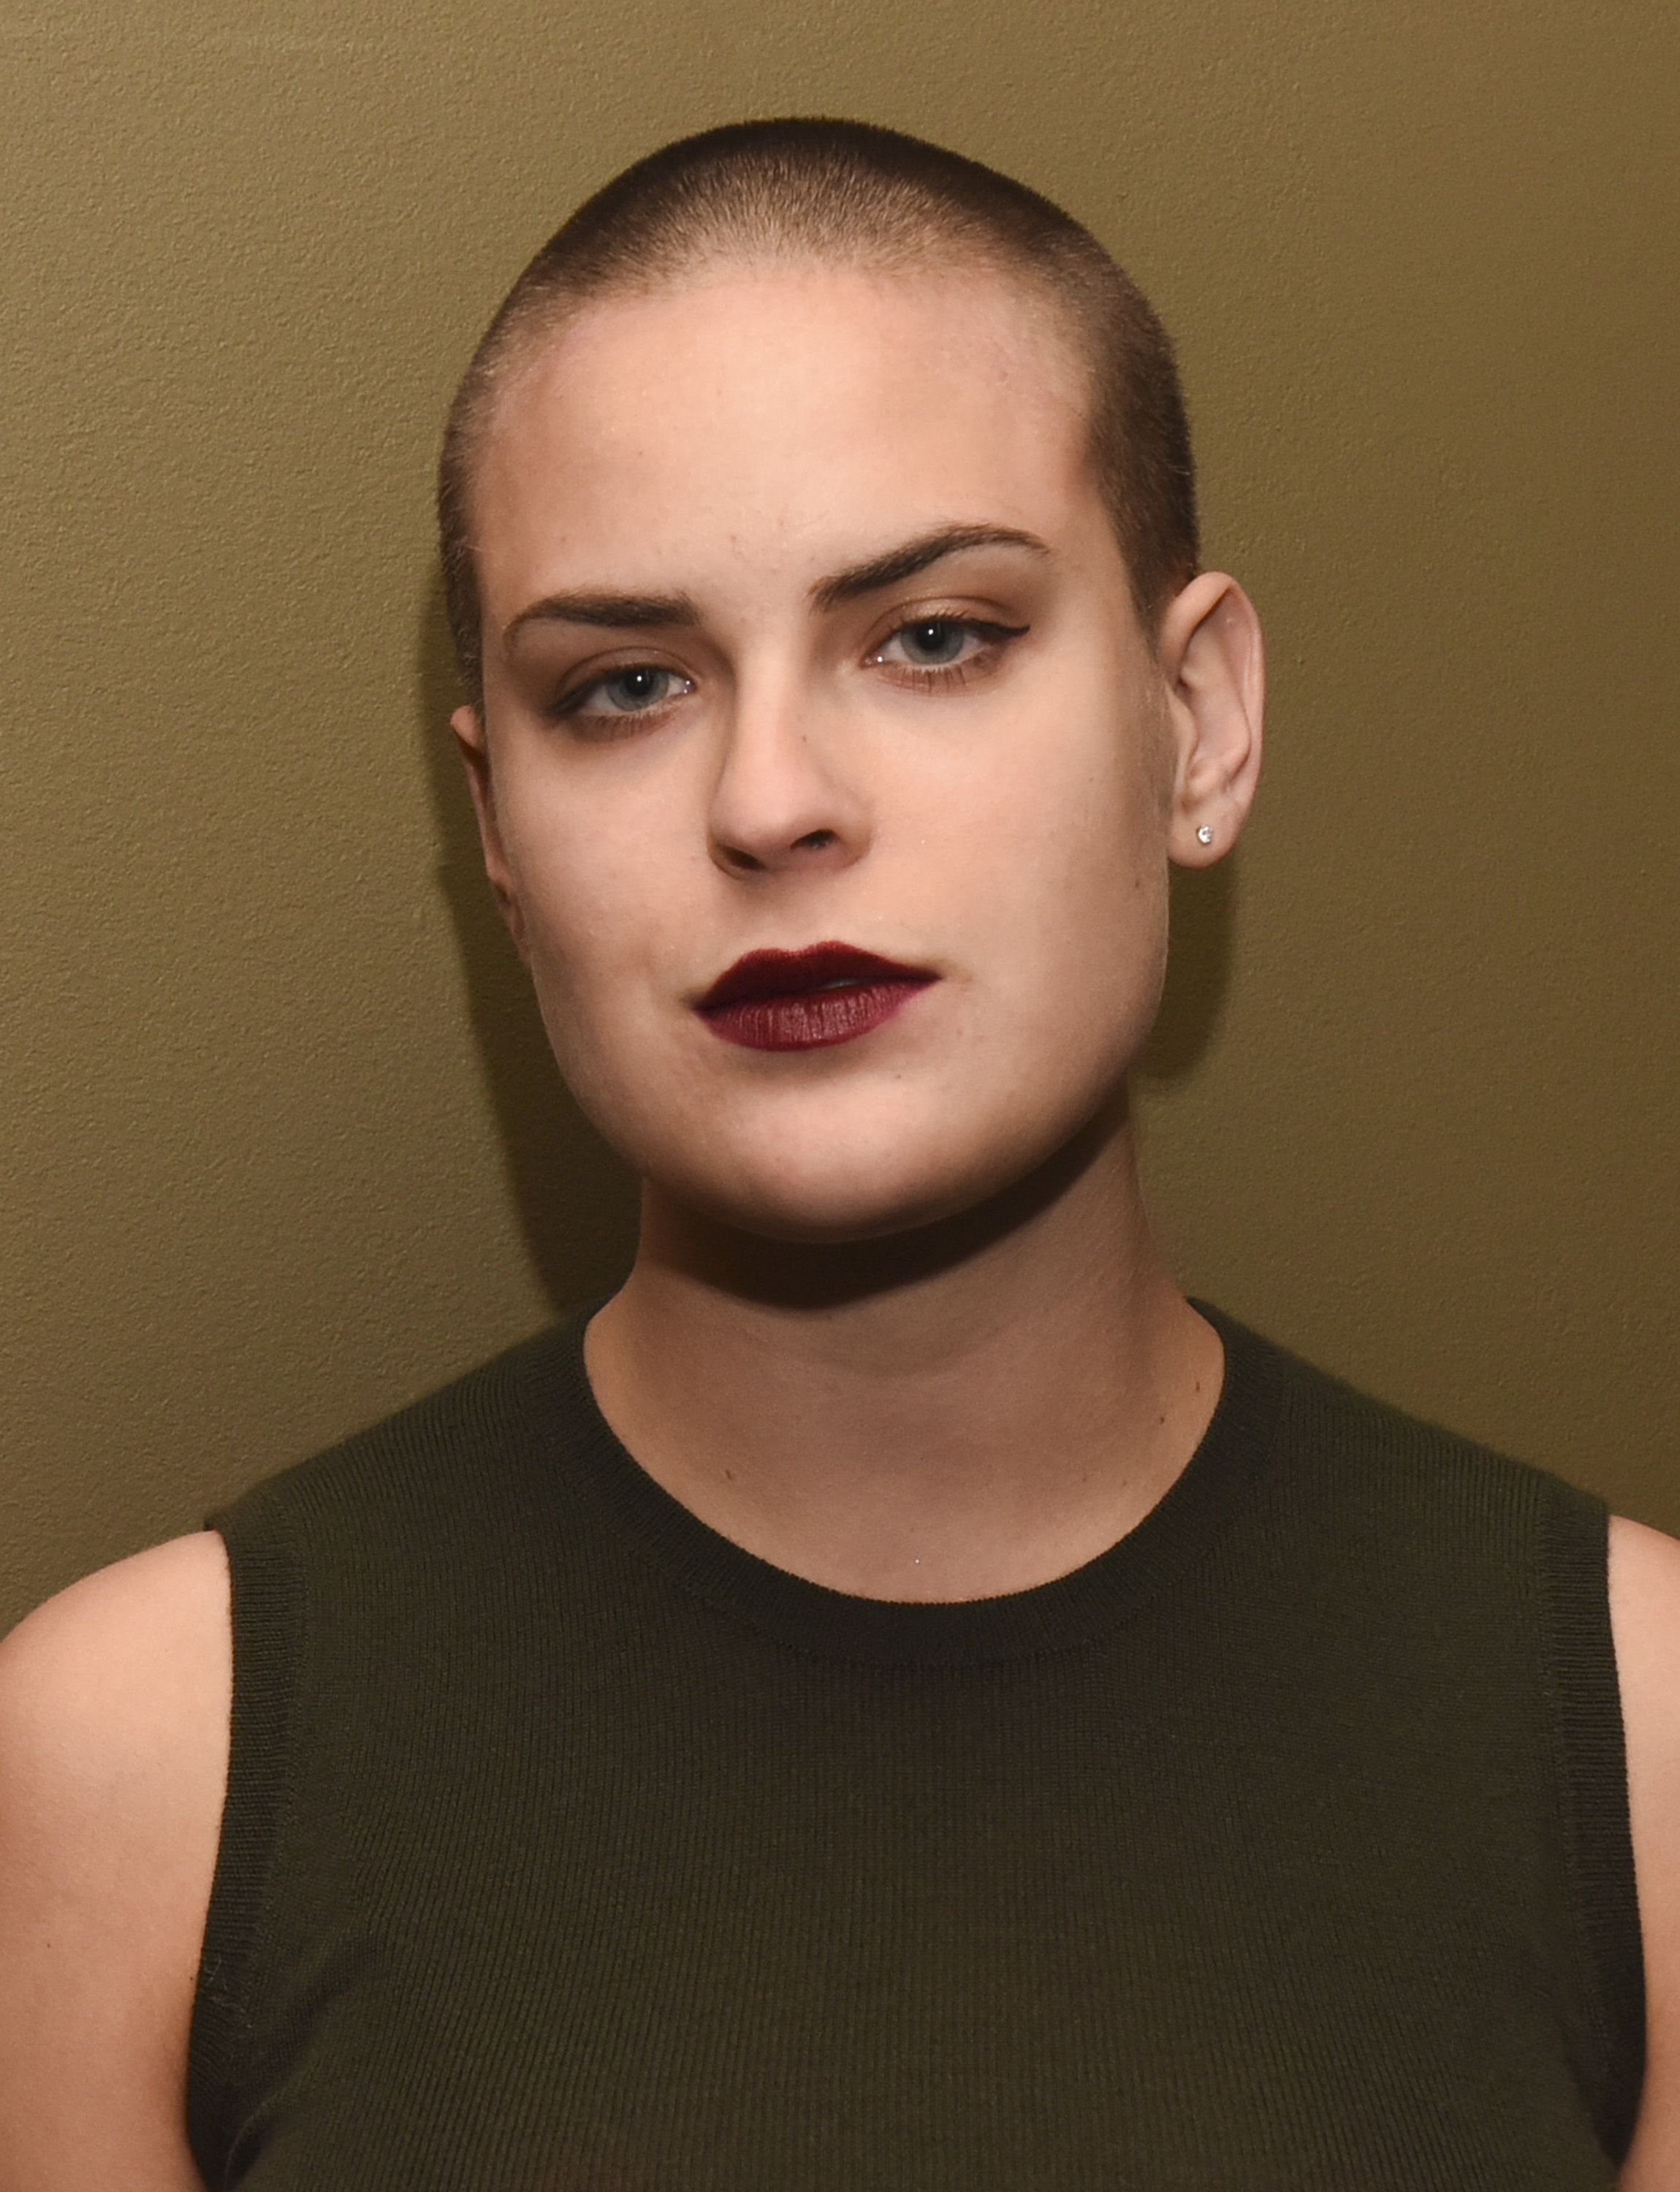 Buzz A. reccomend Shaved head female rock star